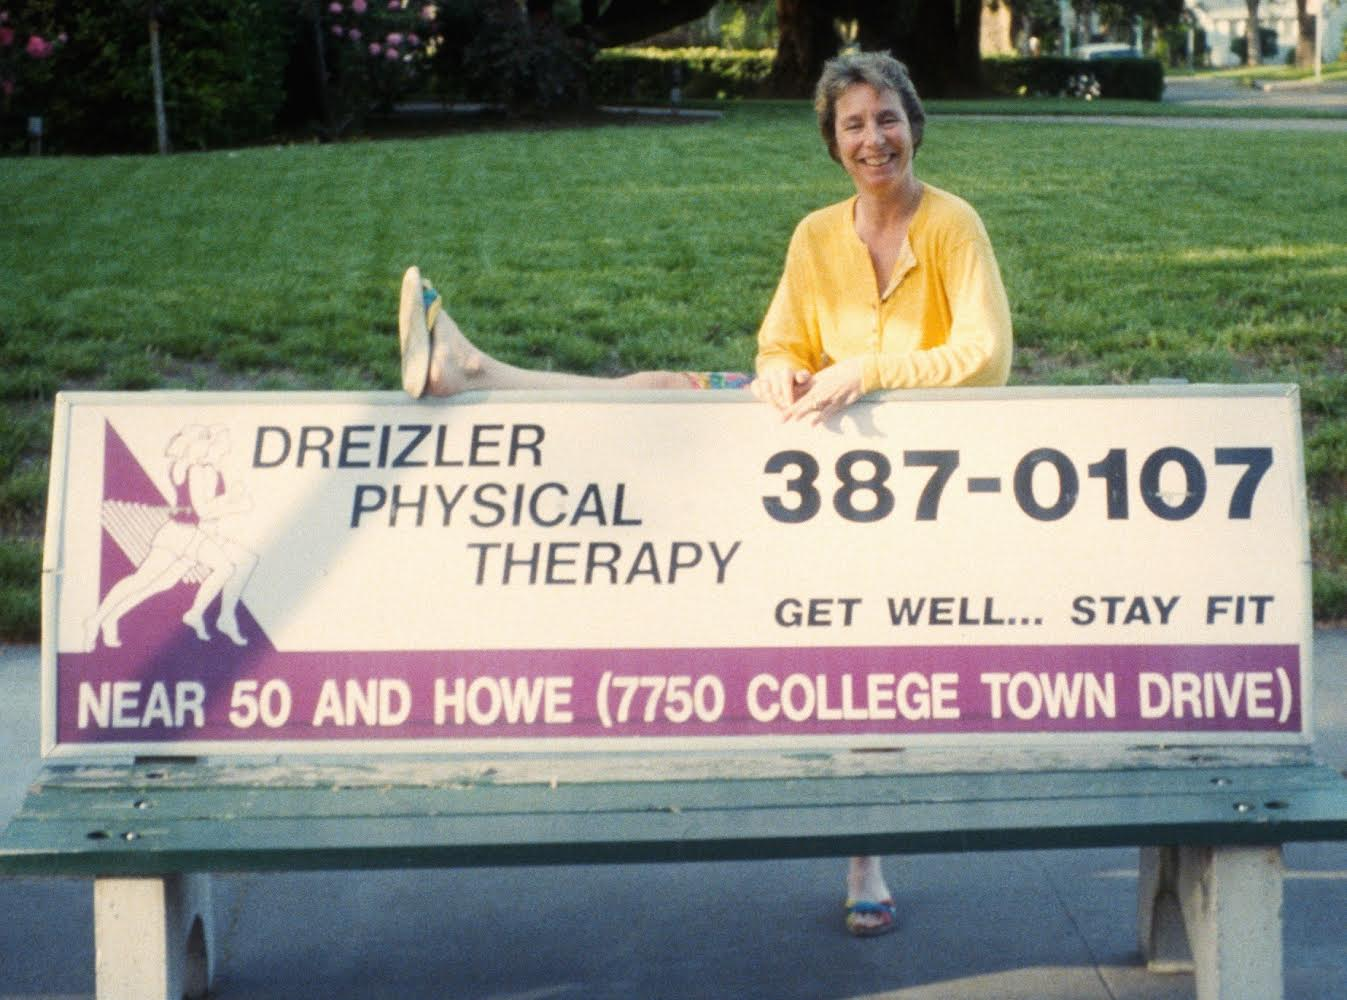 Having an ad on a bus bench seemed like such a big deal! It was in our neighborhood and I loved seeing it.